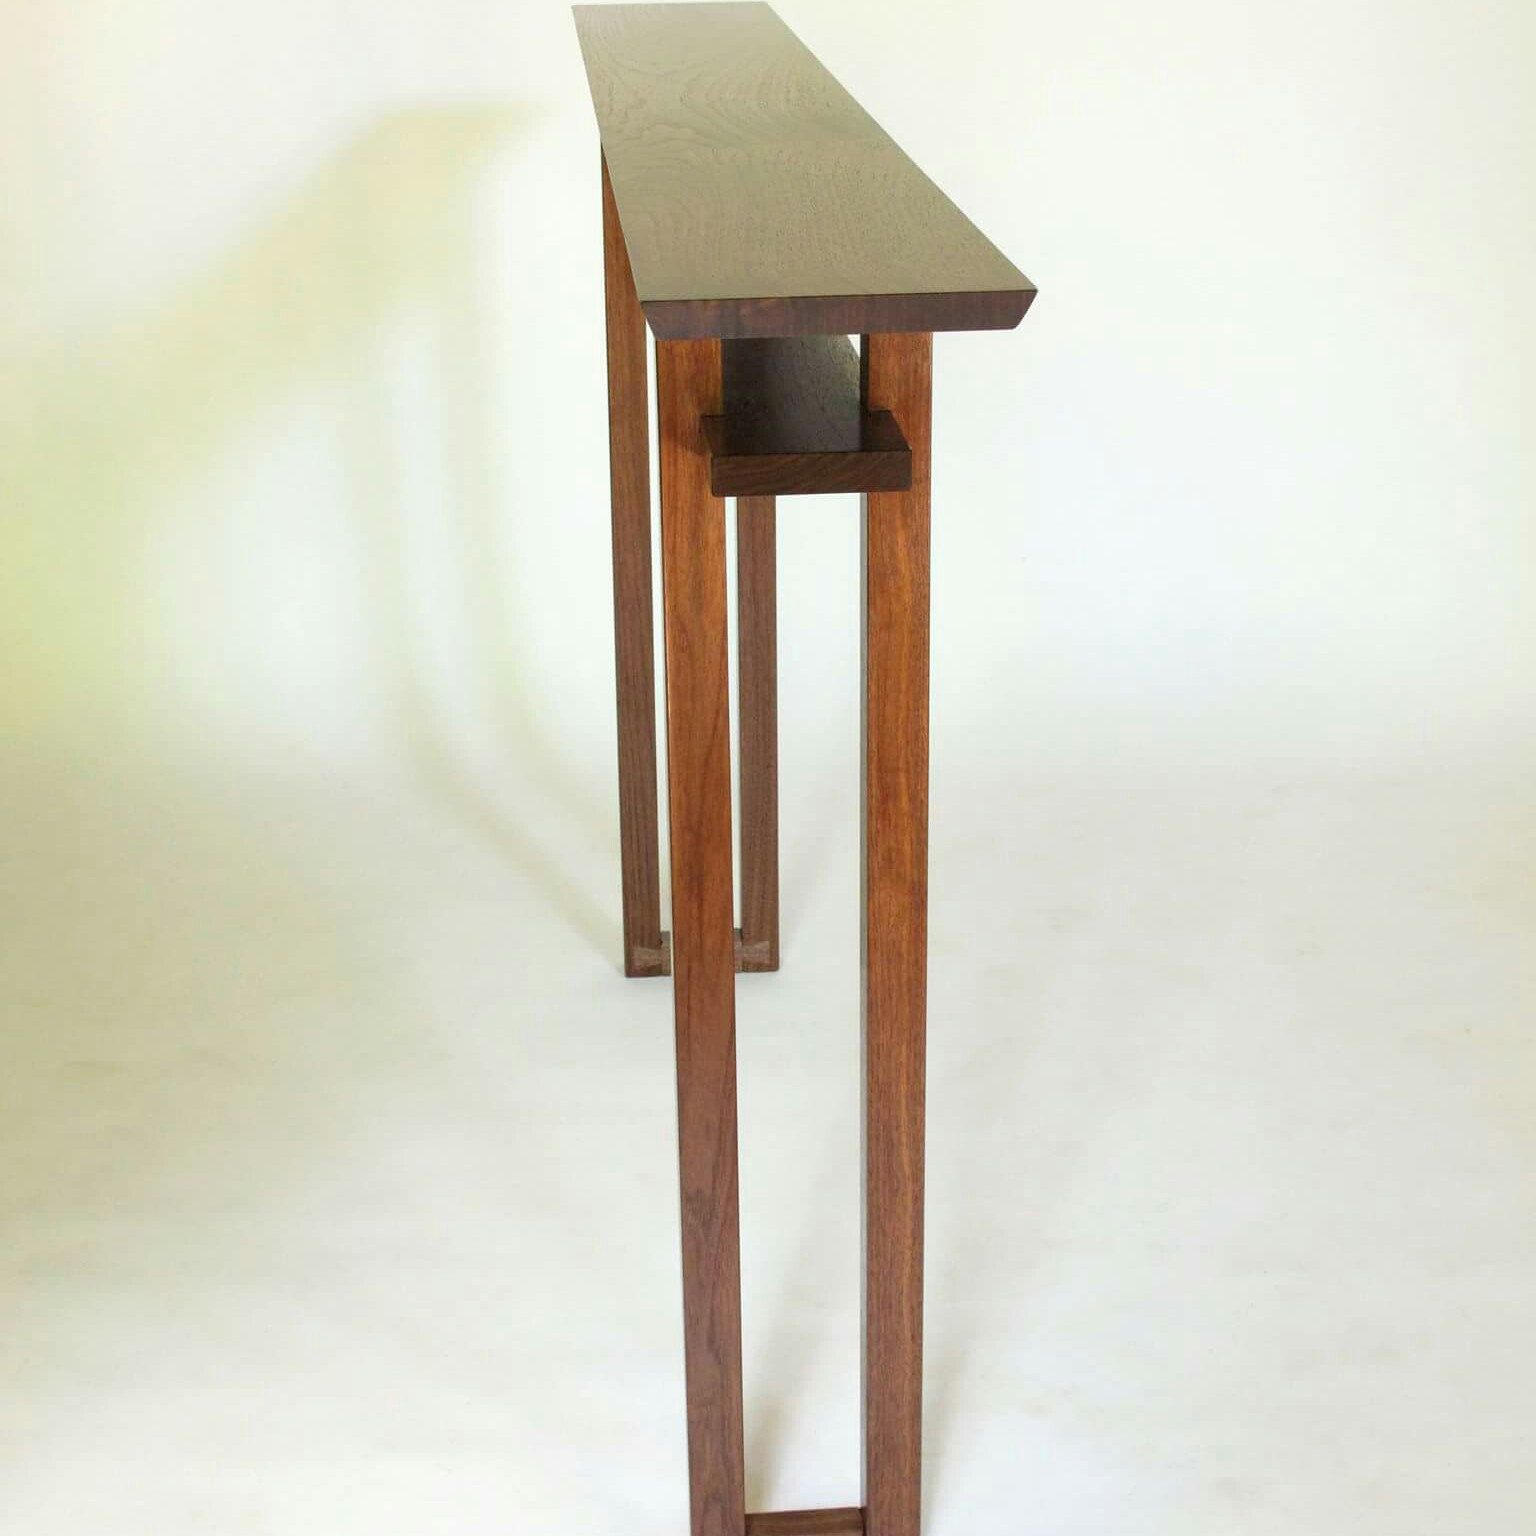 Entry Tables For Small Spaces very narrow console table for small spaces: hall table/ entry